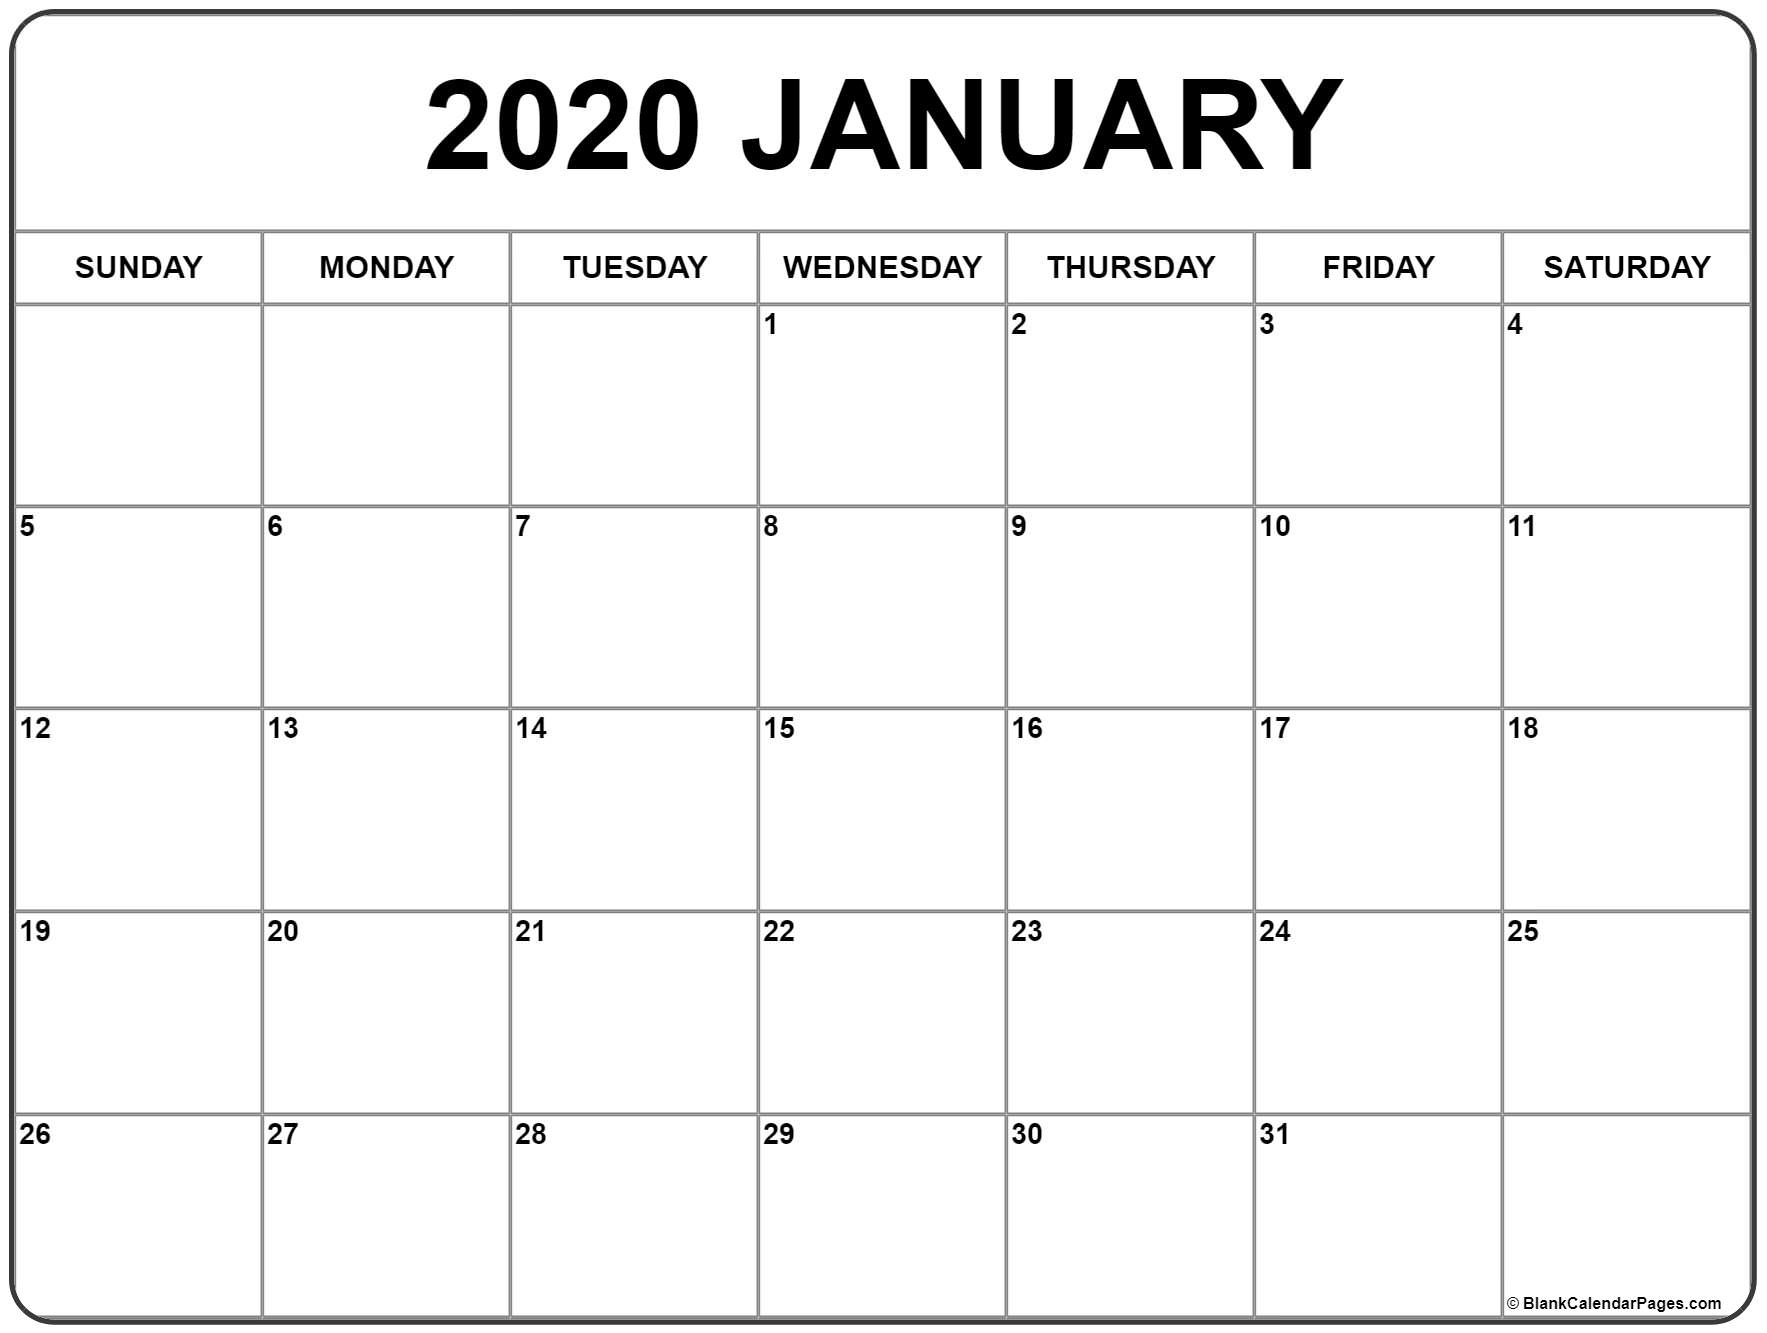 Blank Calendar Pages December 2021 And January 2020